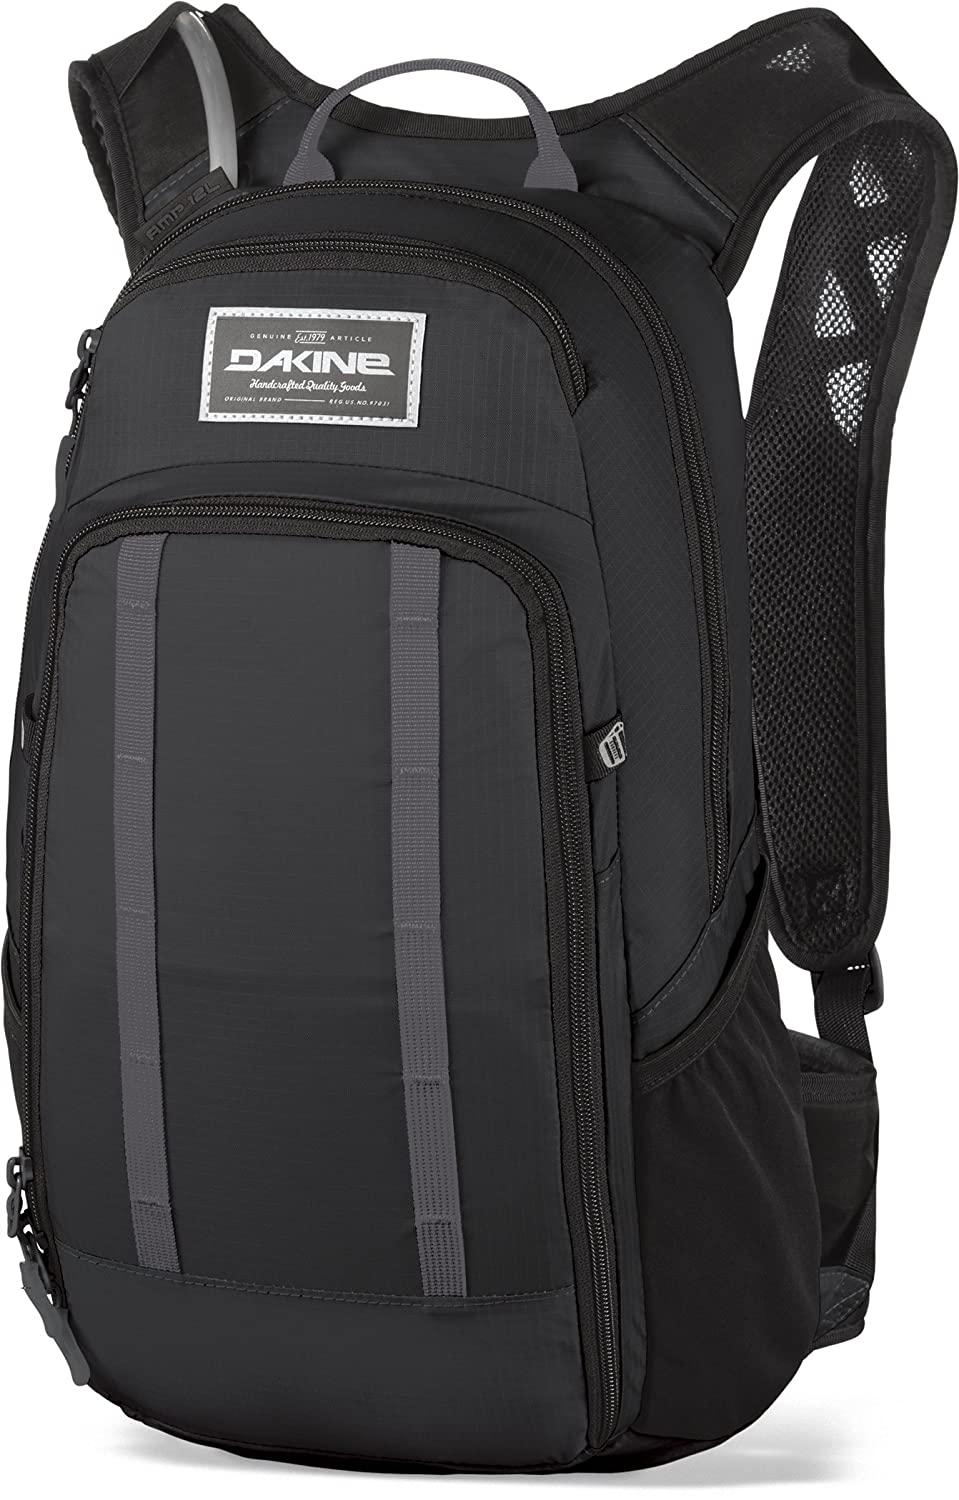 Dakine Amp 12L Hydration Pack Multiple Colors New